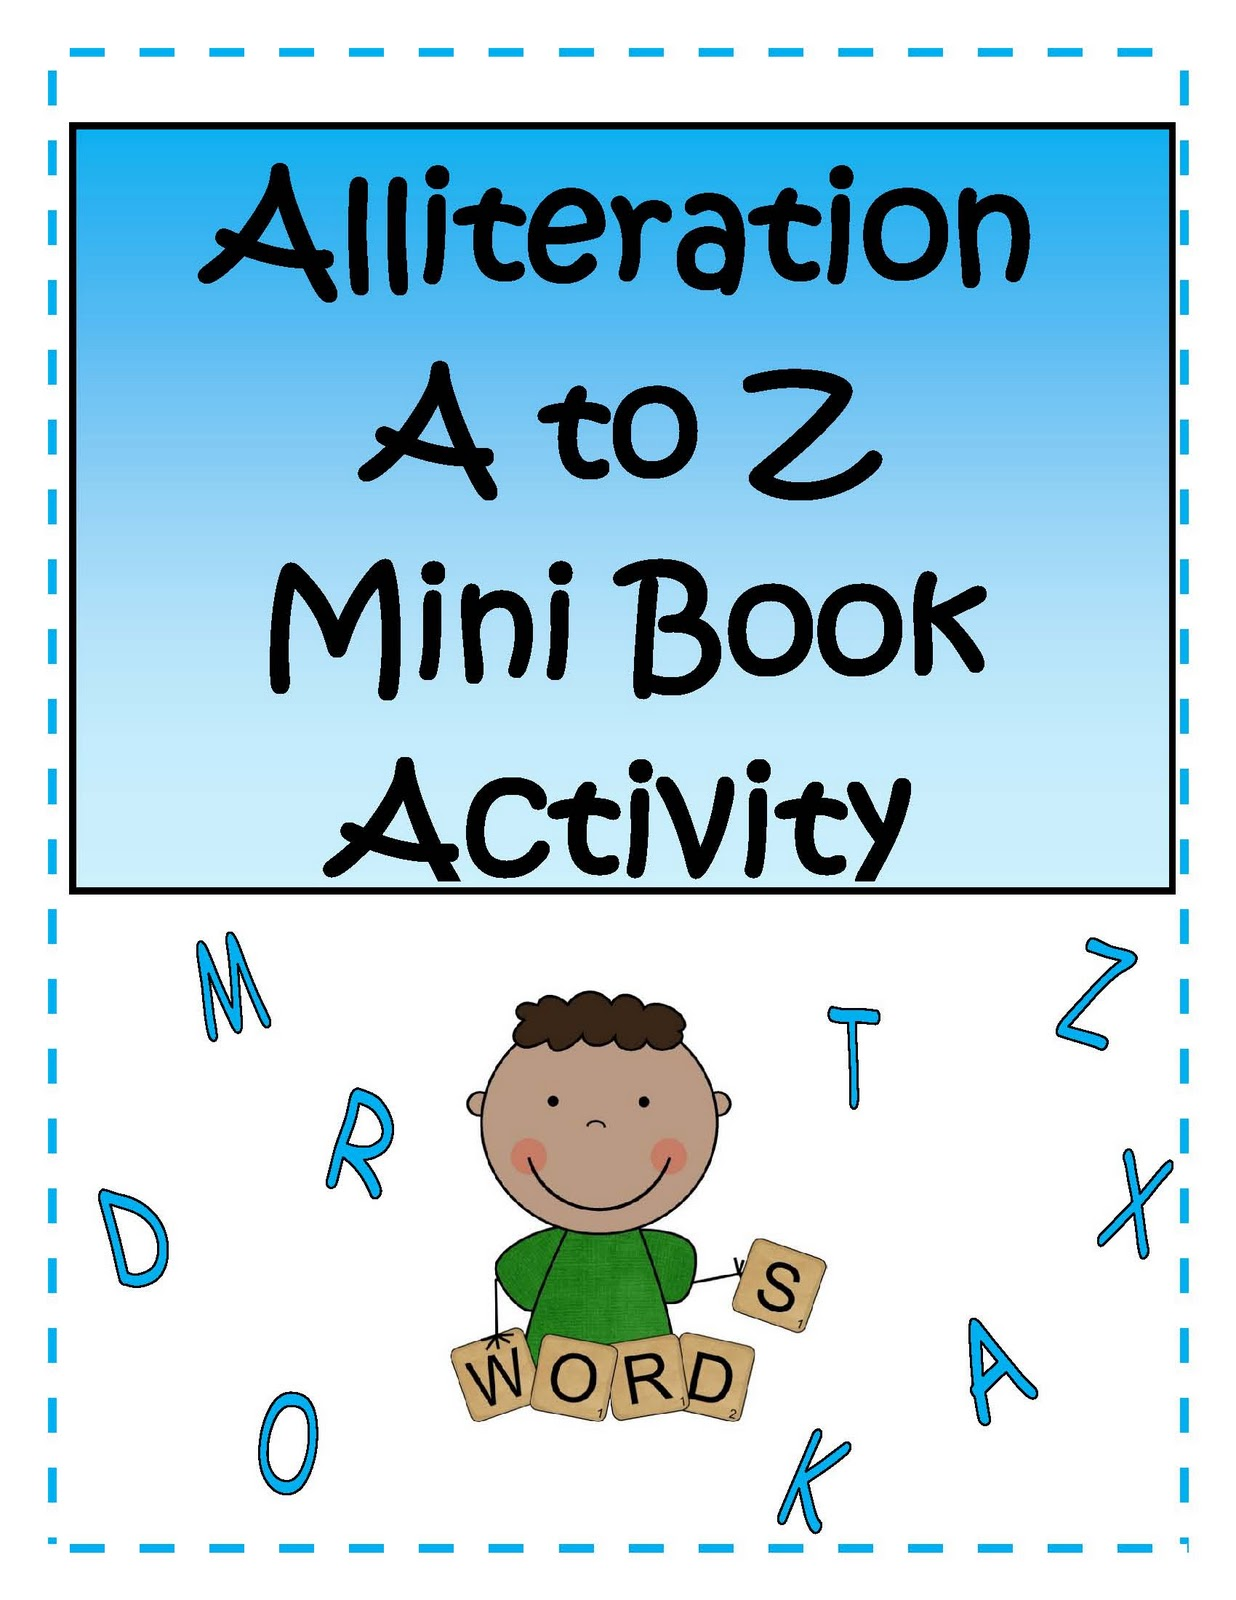 Little Miss Middle School Alliteration Activity Booklet